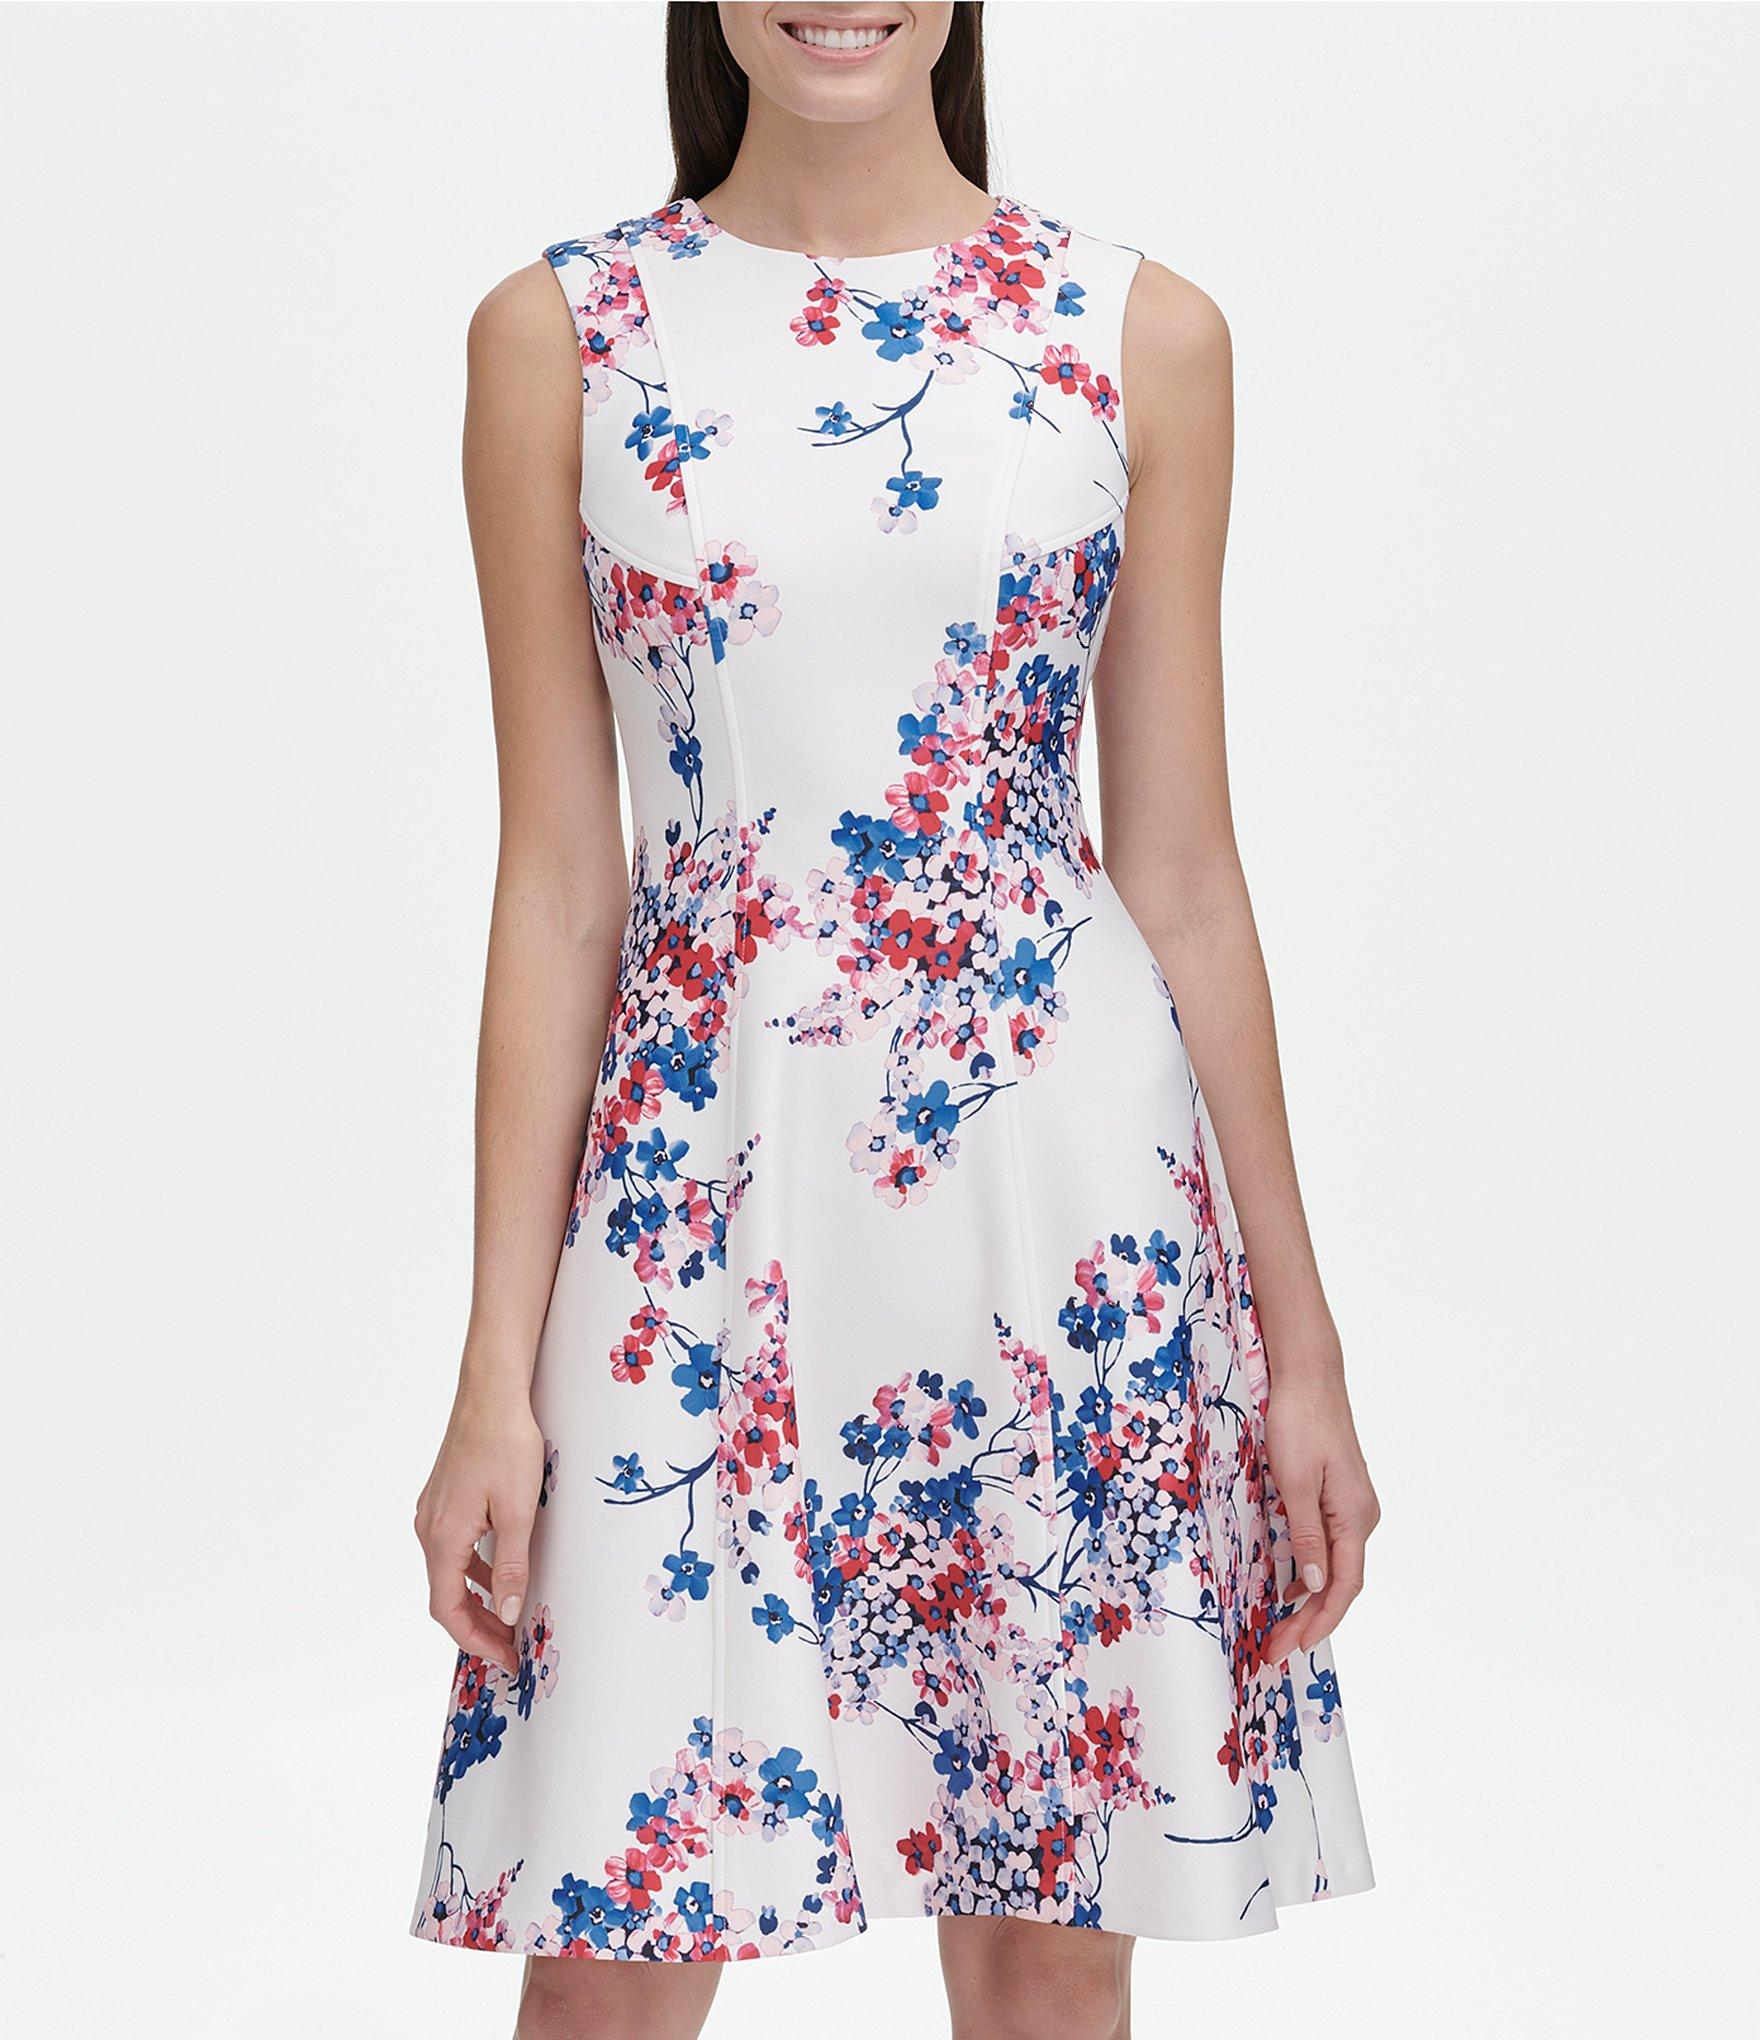 c4a3de53ae44 Tommy Hilfiger - Blue Eloise Floral Print Sleeveless Scuba Fit   Flare Dress  - Lyst. View fullscreen